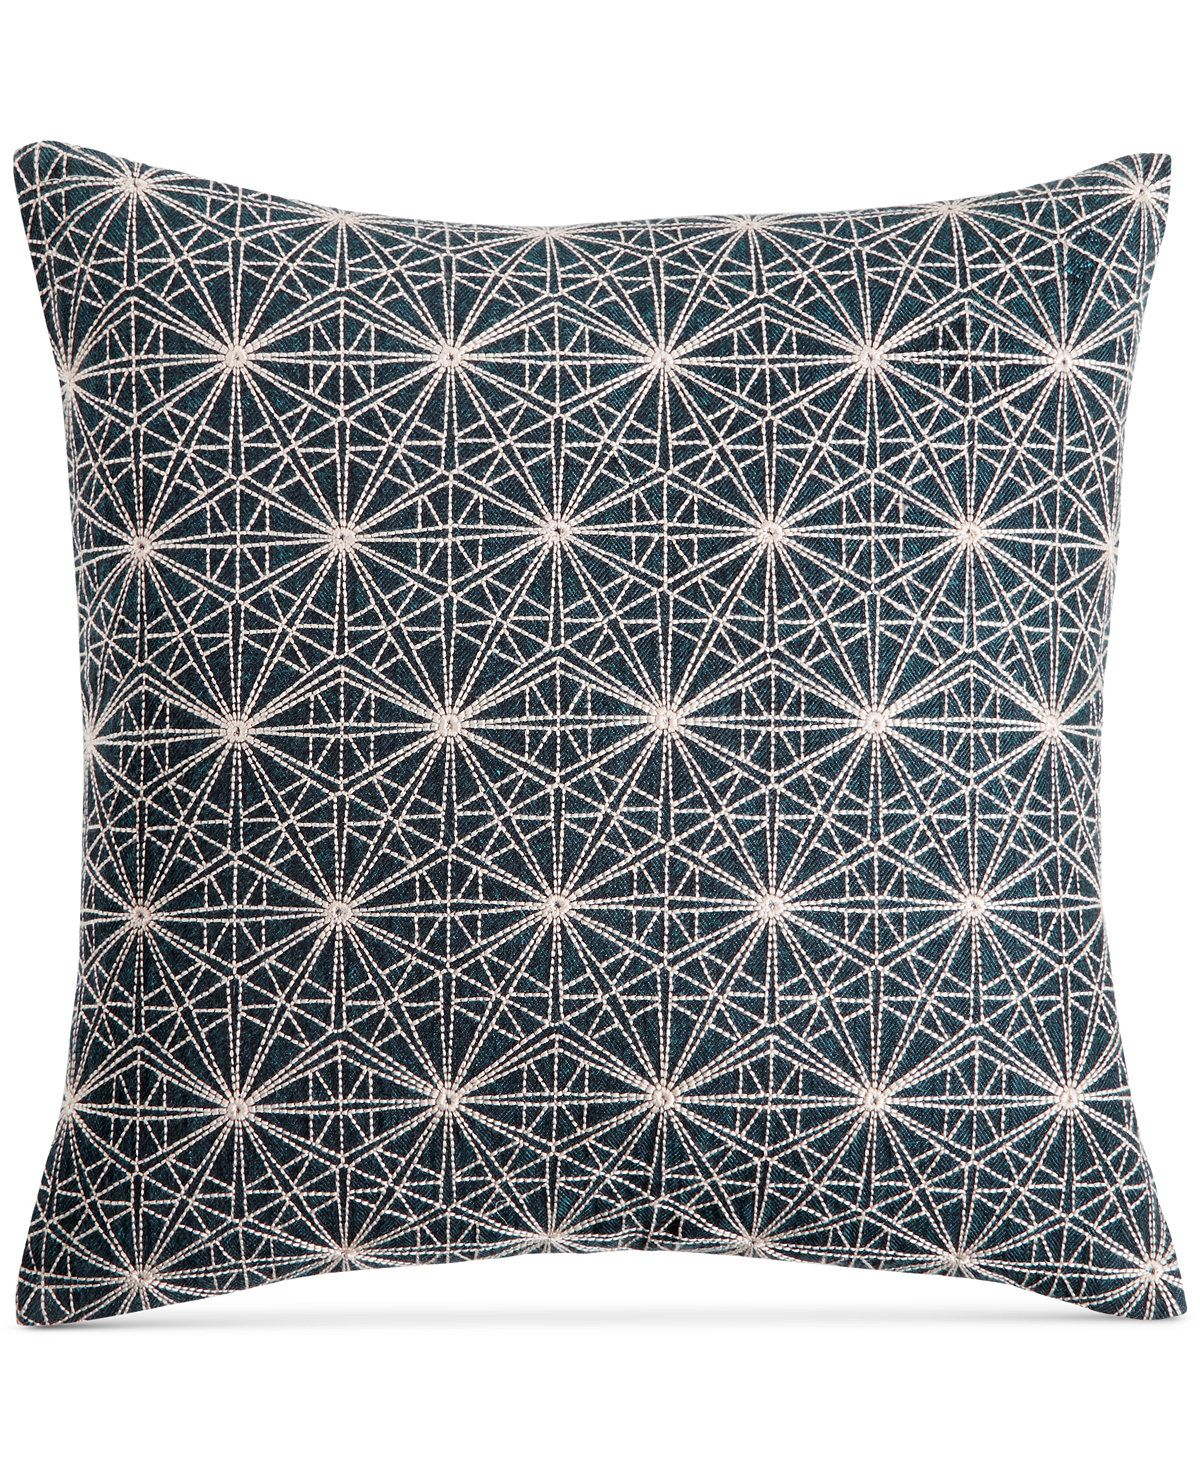 "Macy's Decorative Pillows Classy Hotel Collection Modern Wave 18"" Square Decorative Pillow Created Inspiration Design"